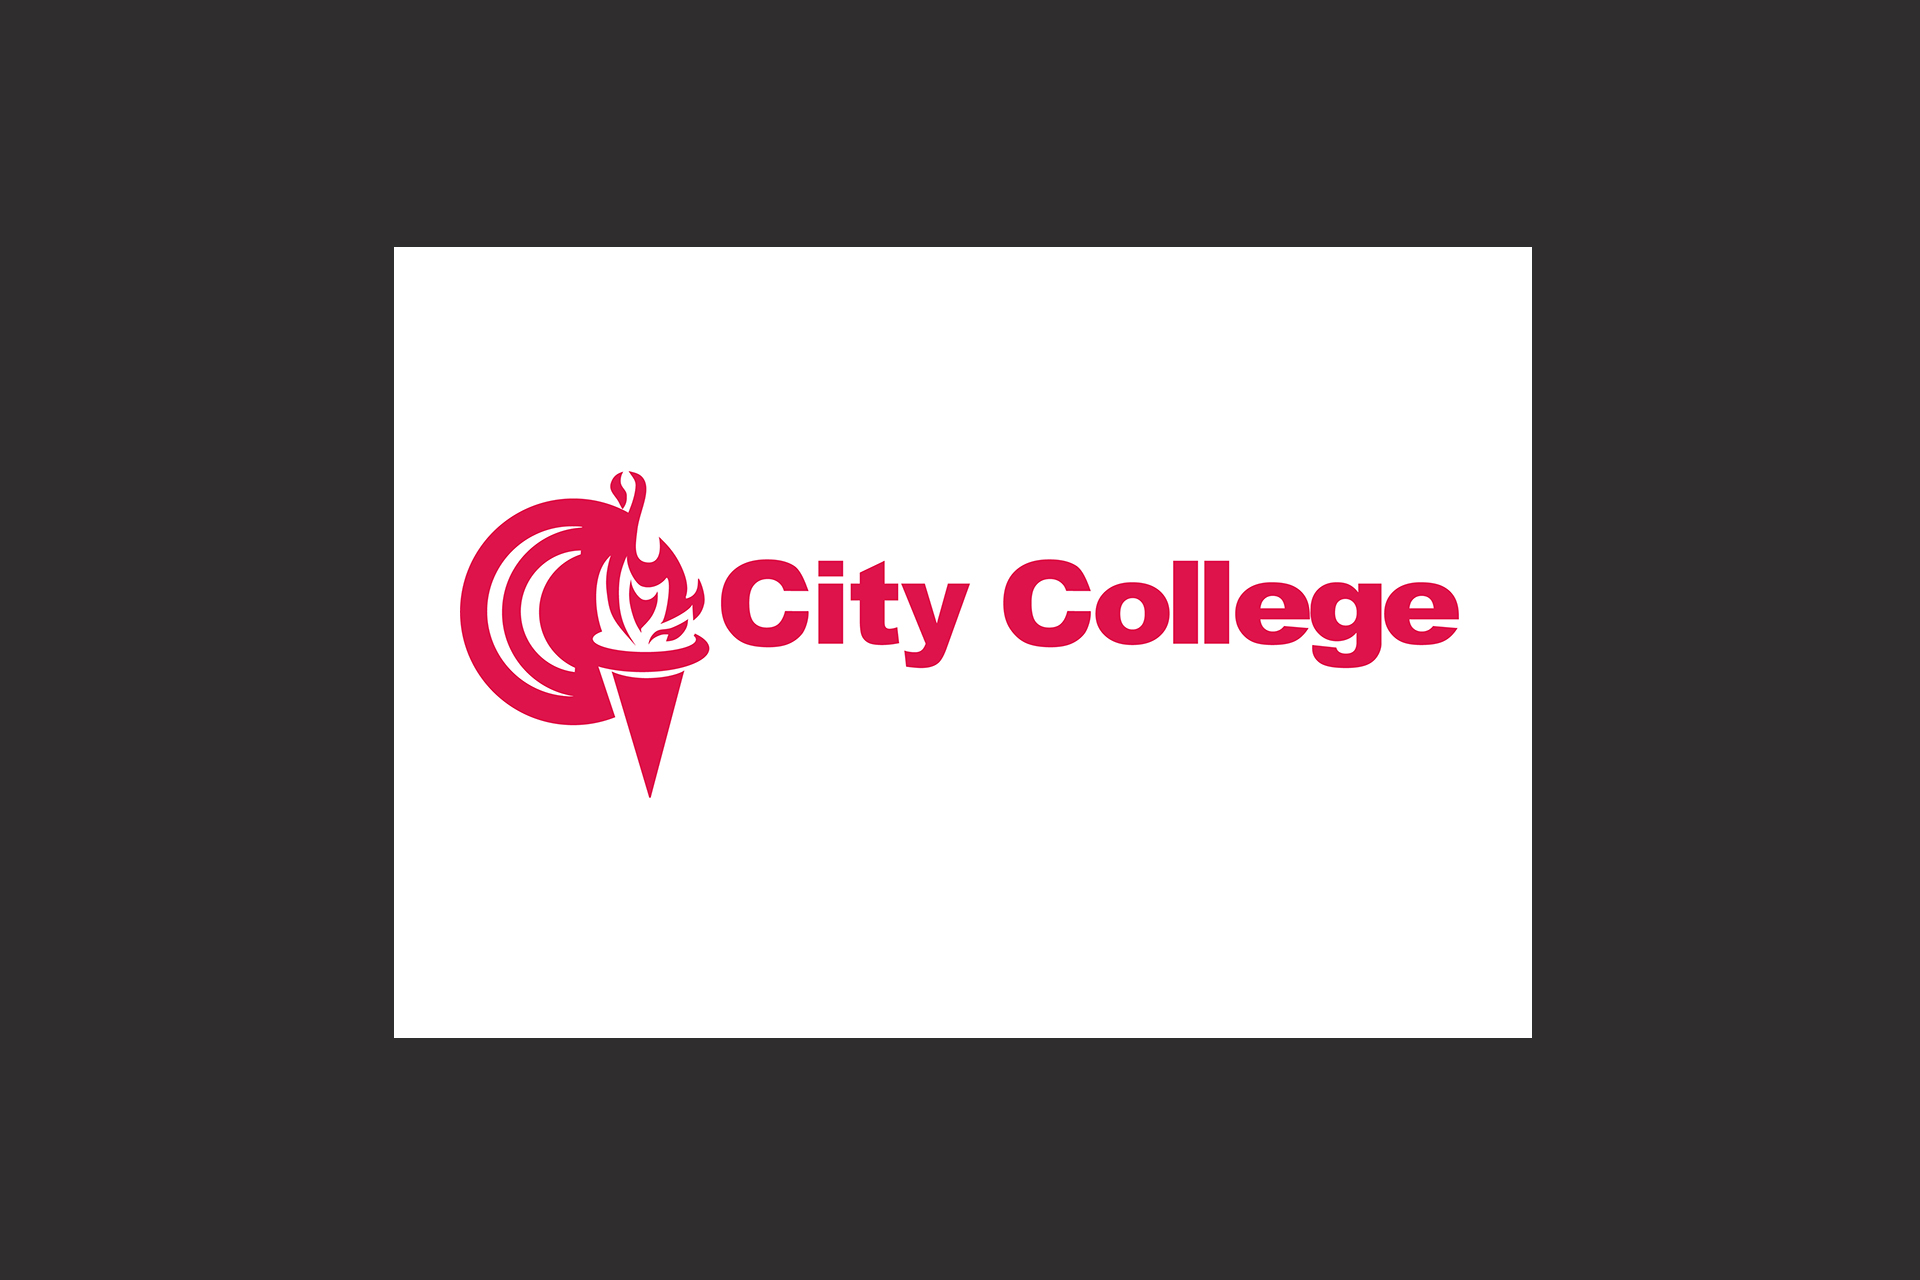 City College lgogo design